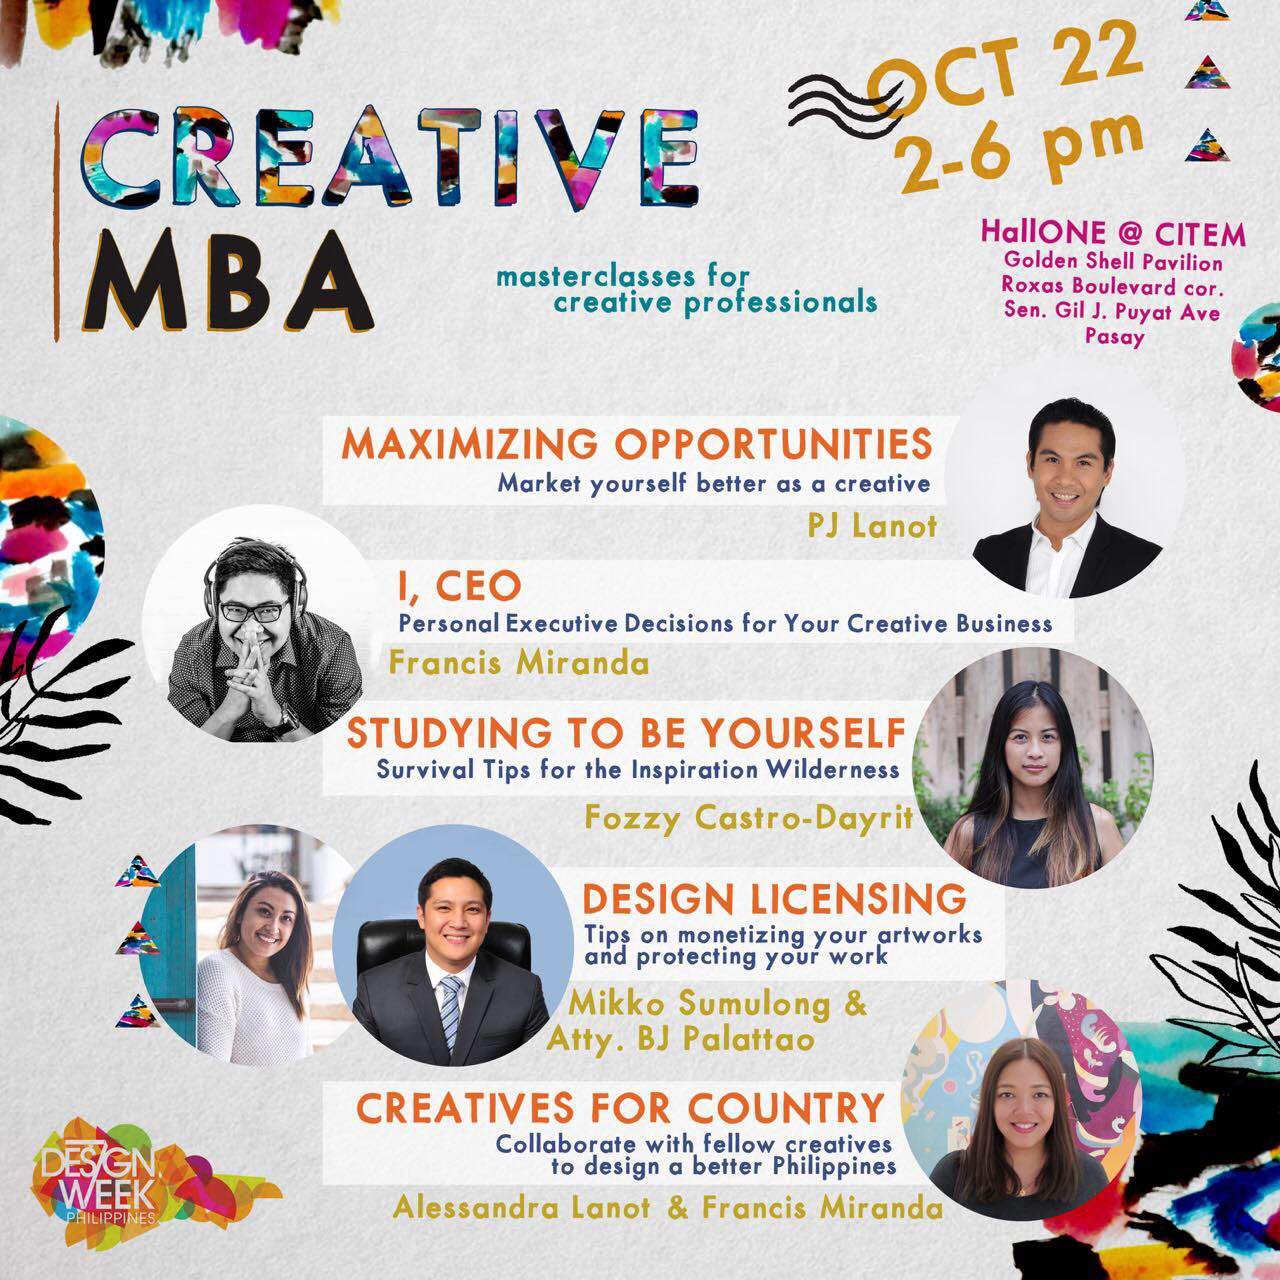 Mix Modern Solid on Creative MBA at Design Week Philippines Event Posters